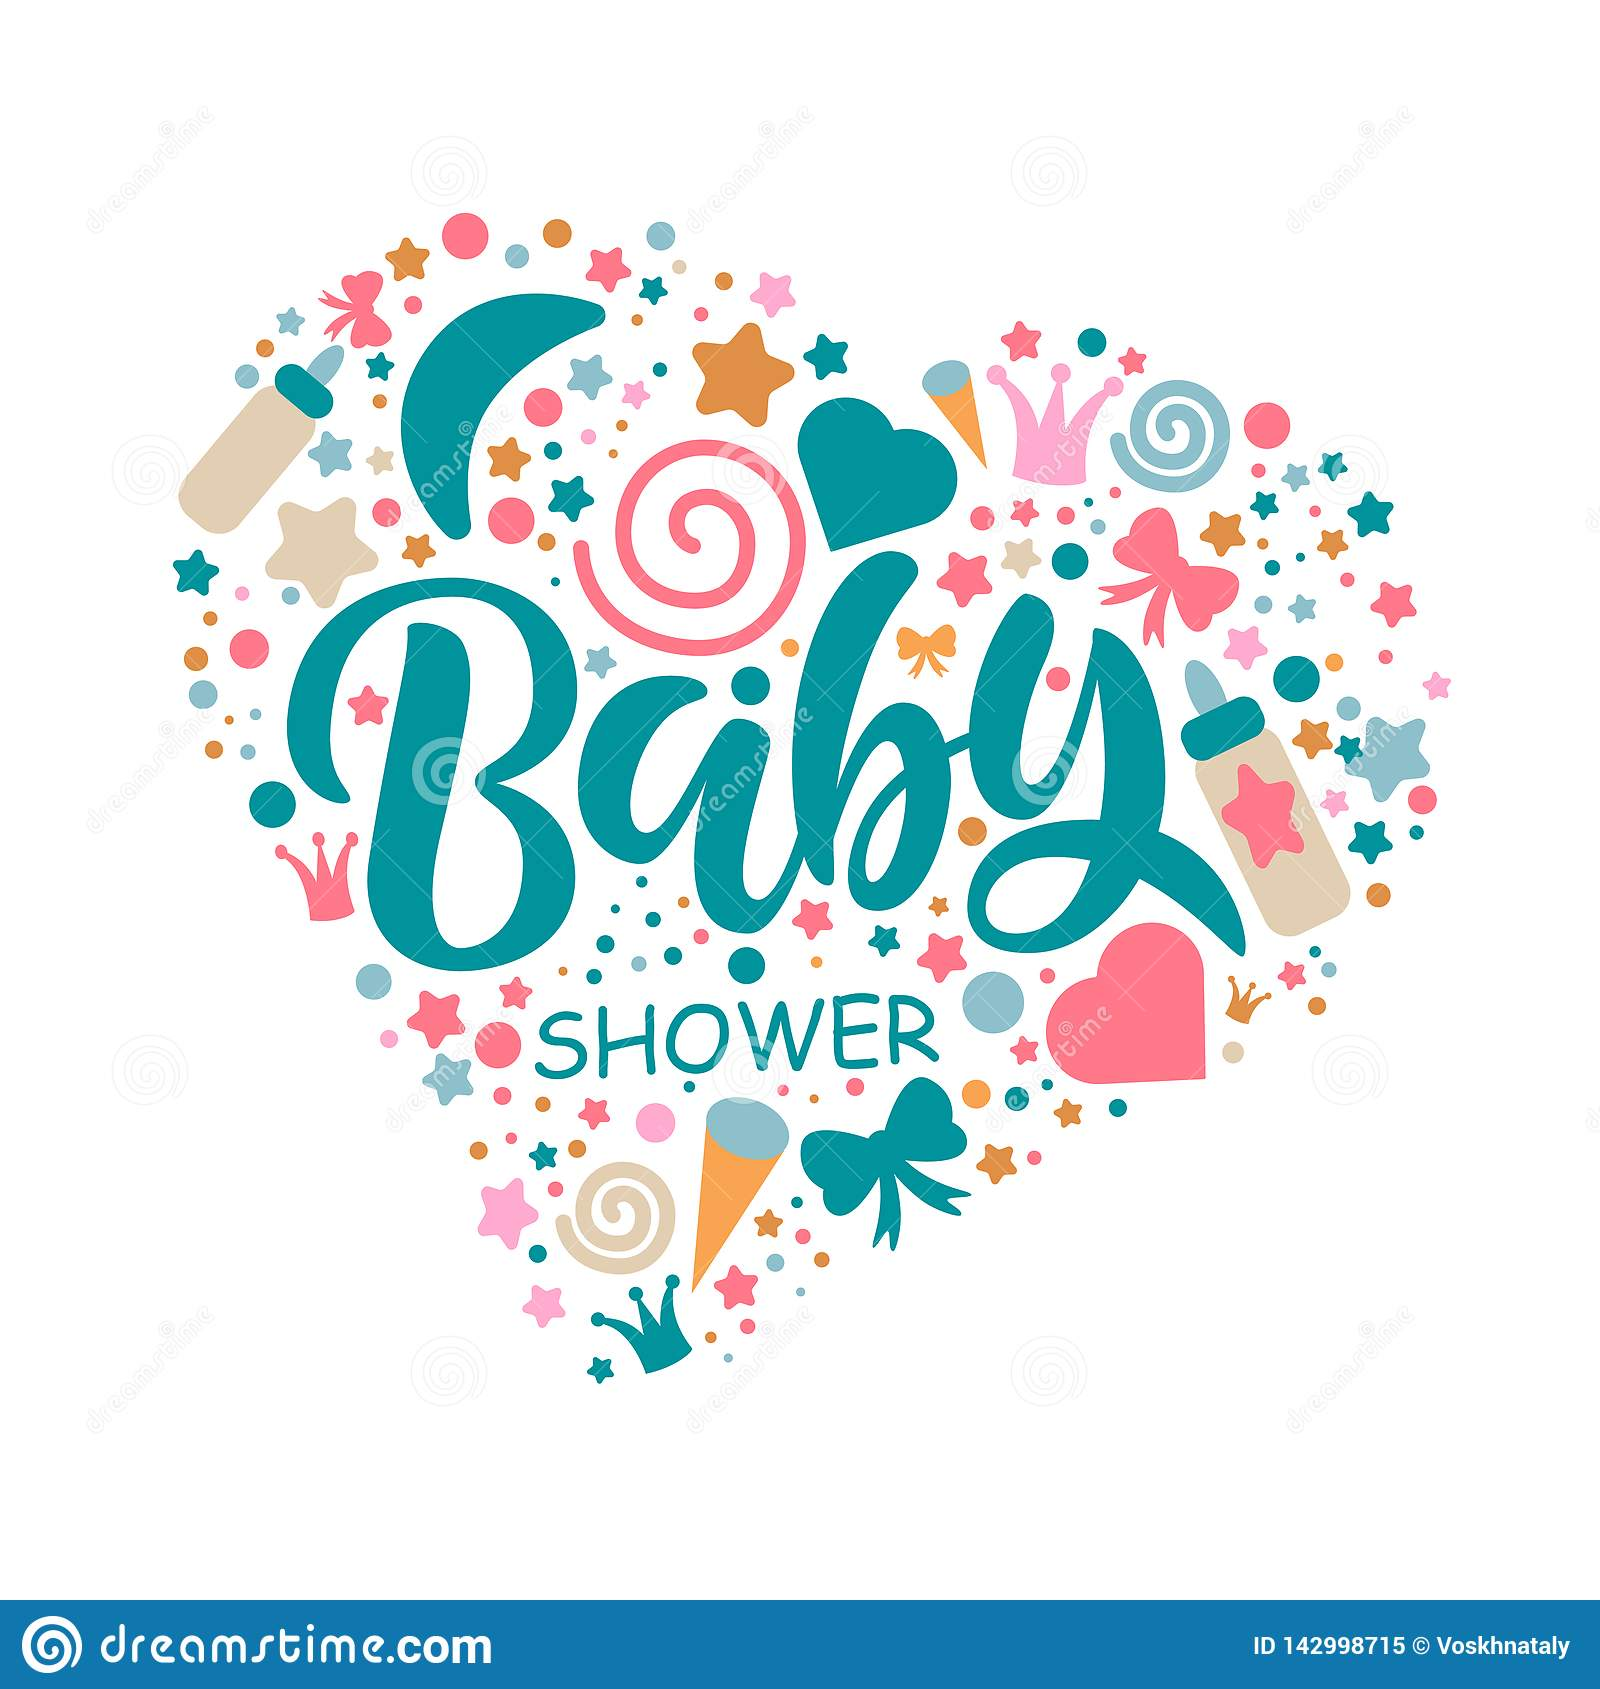 Baby Shower Word Template from thumbs.dreamstime.com